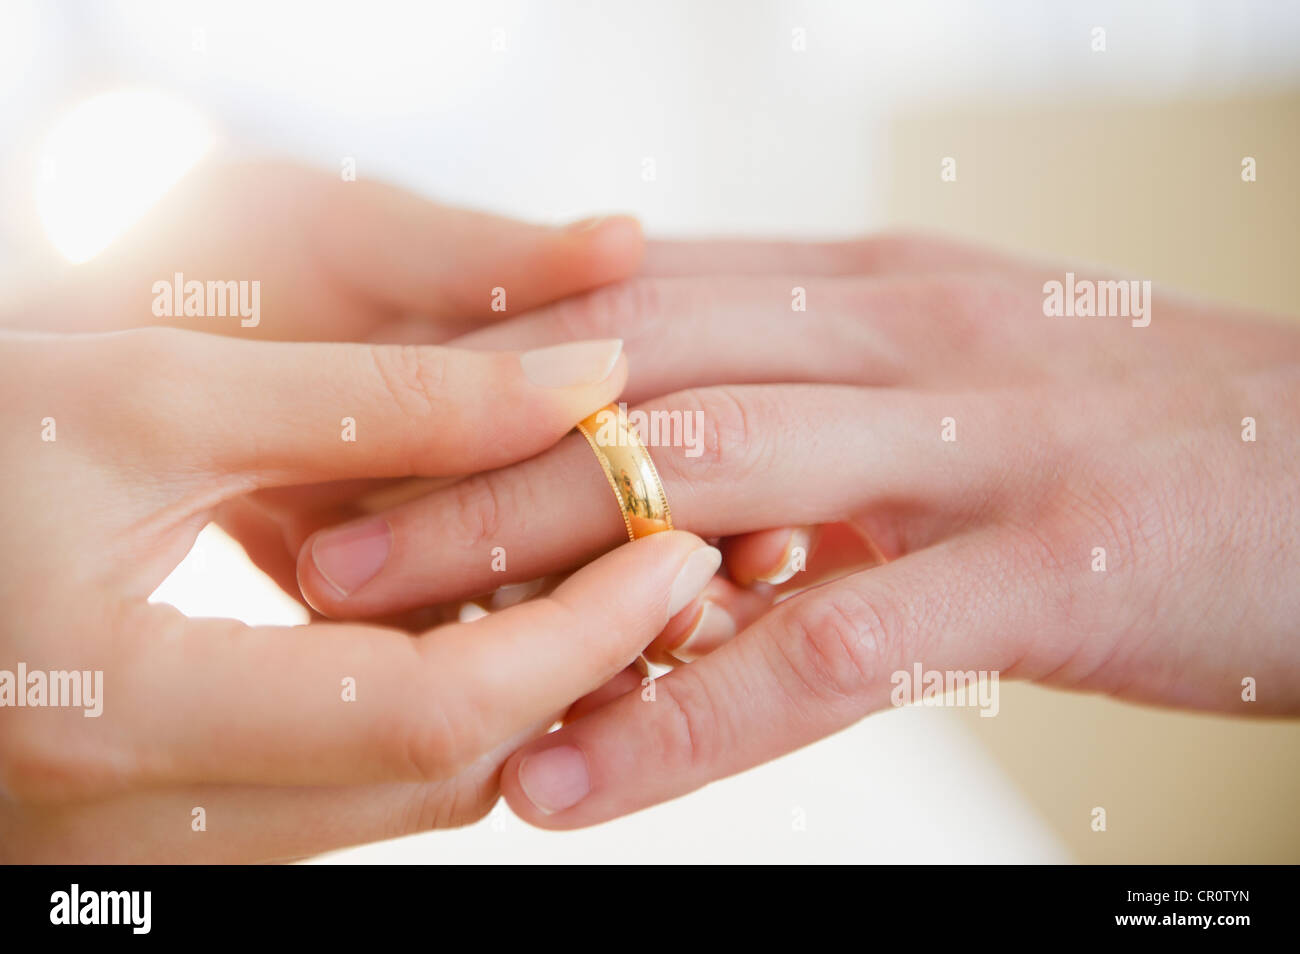 Mans Ring Finger Stock Photos & Mans Ring Finger Stock Images - Alamy